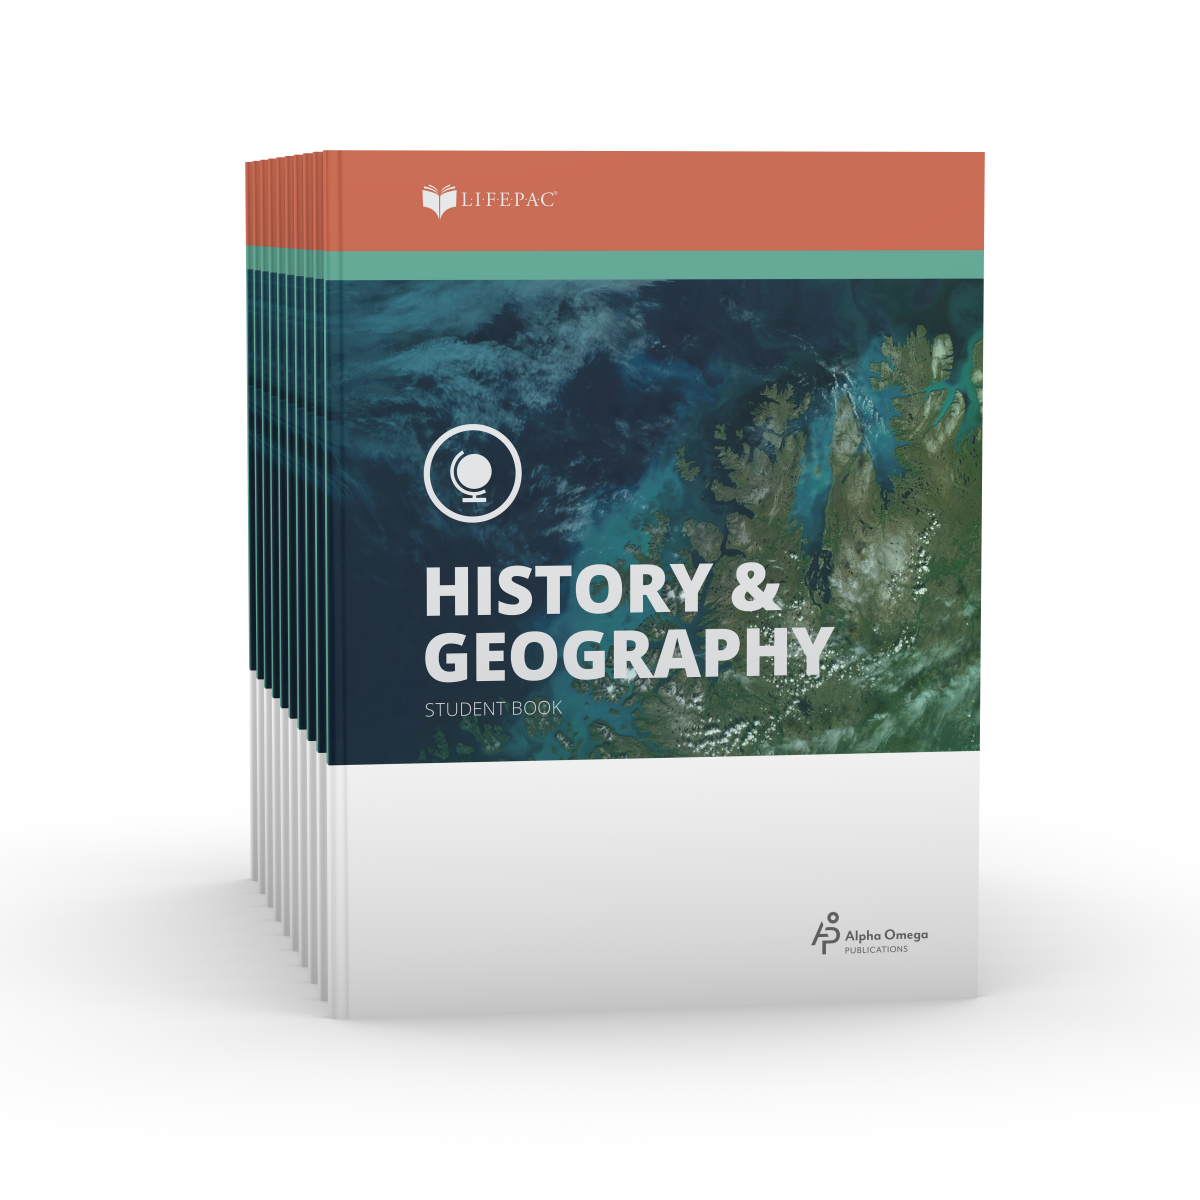 LIFEPAC 8th Grade History & Geography 10-Unit Set